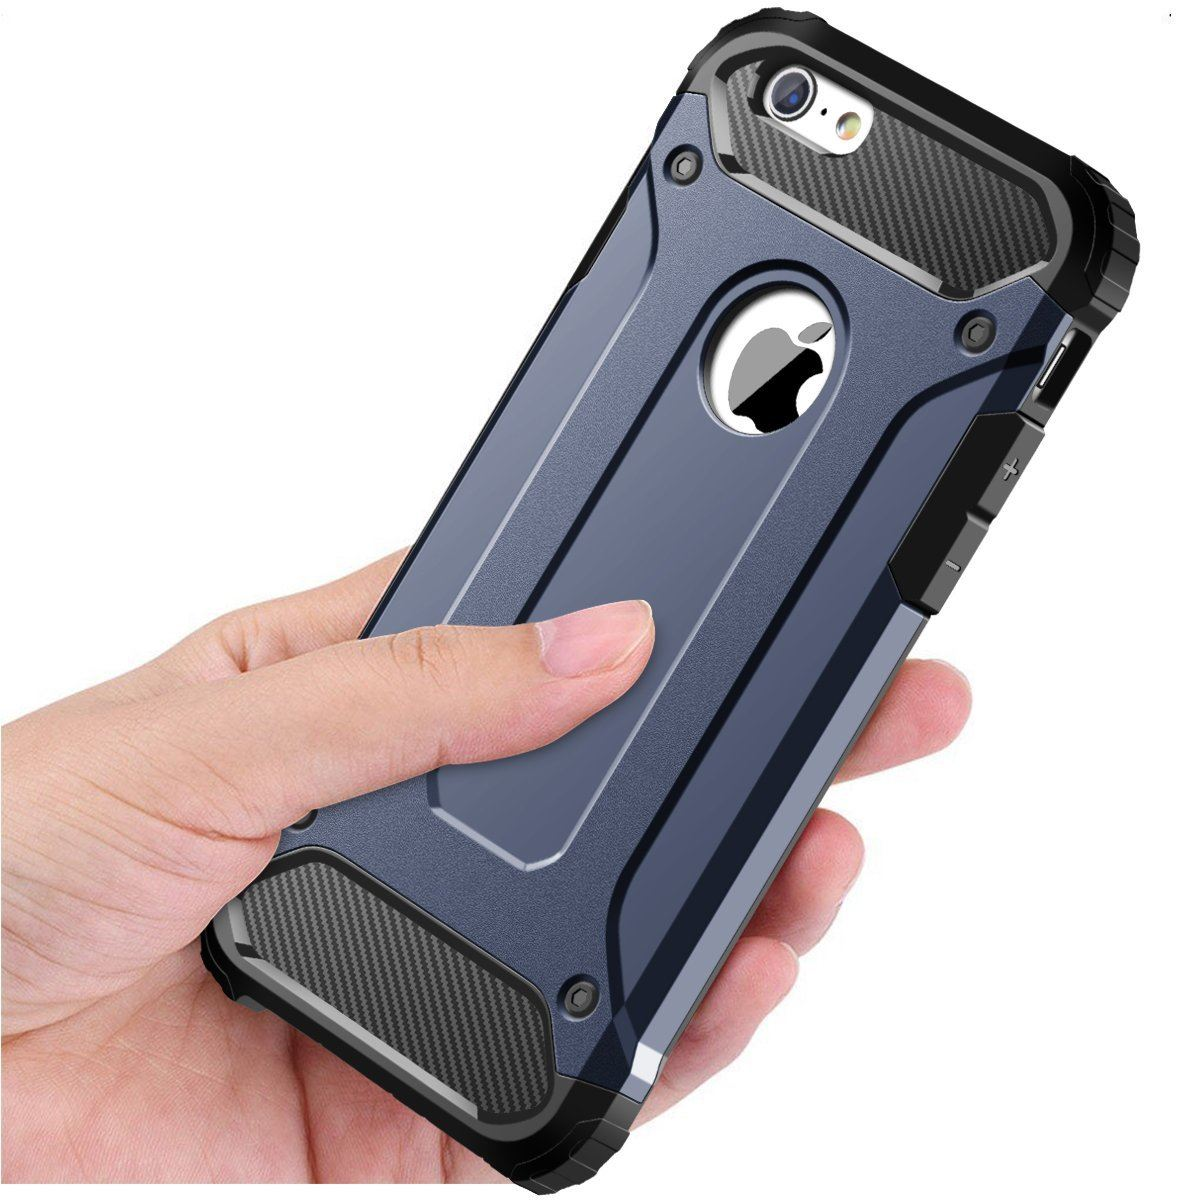 Hybrid-Armor-Shockproof-Rugged-Bumper-Case-For-Apple-iPhone-10-X-8-7-Plus-6s-5s miniature 63